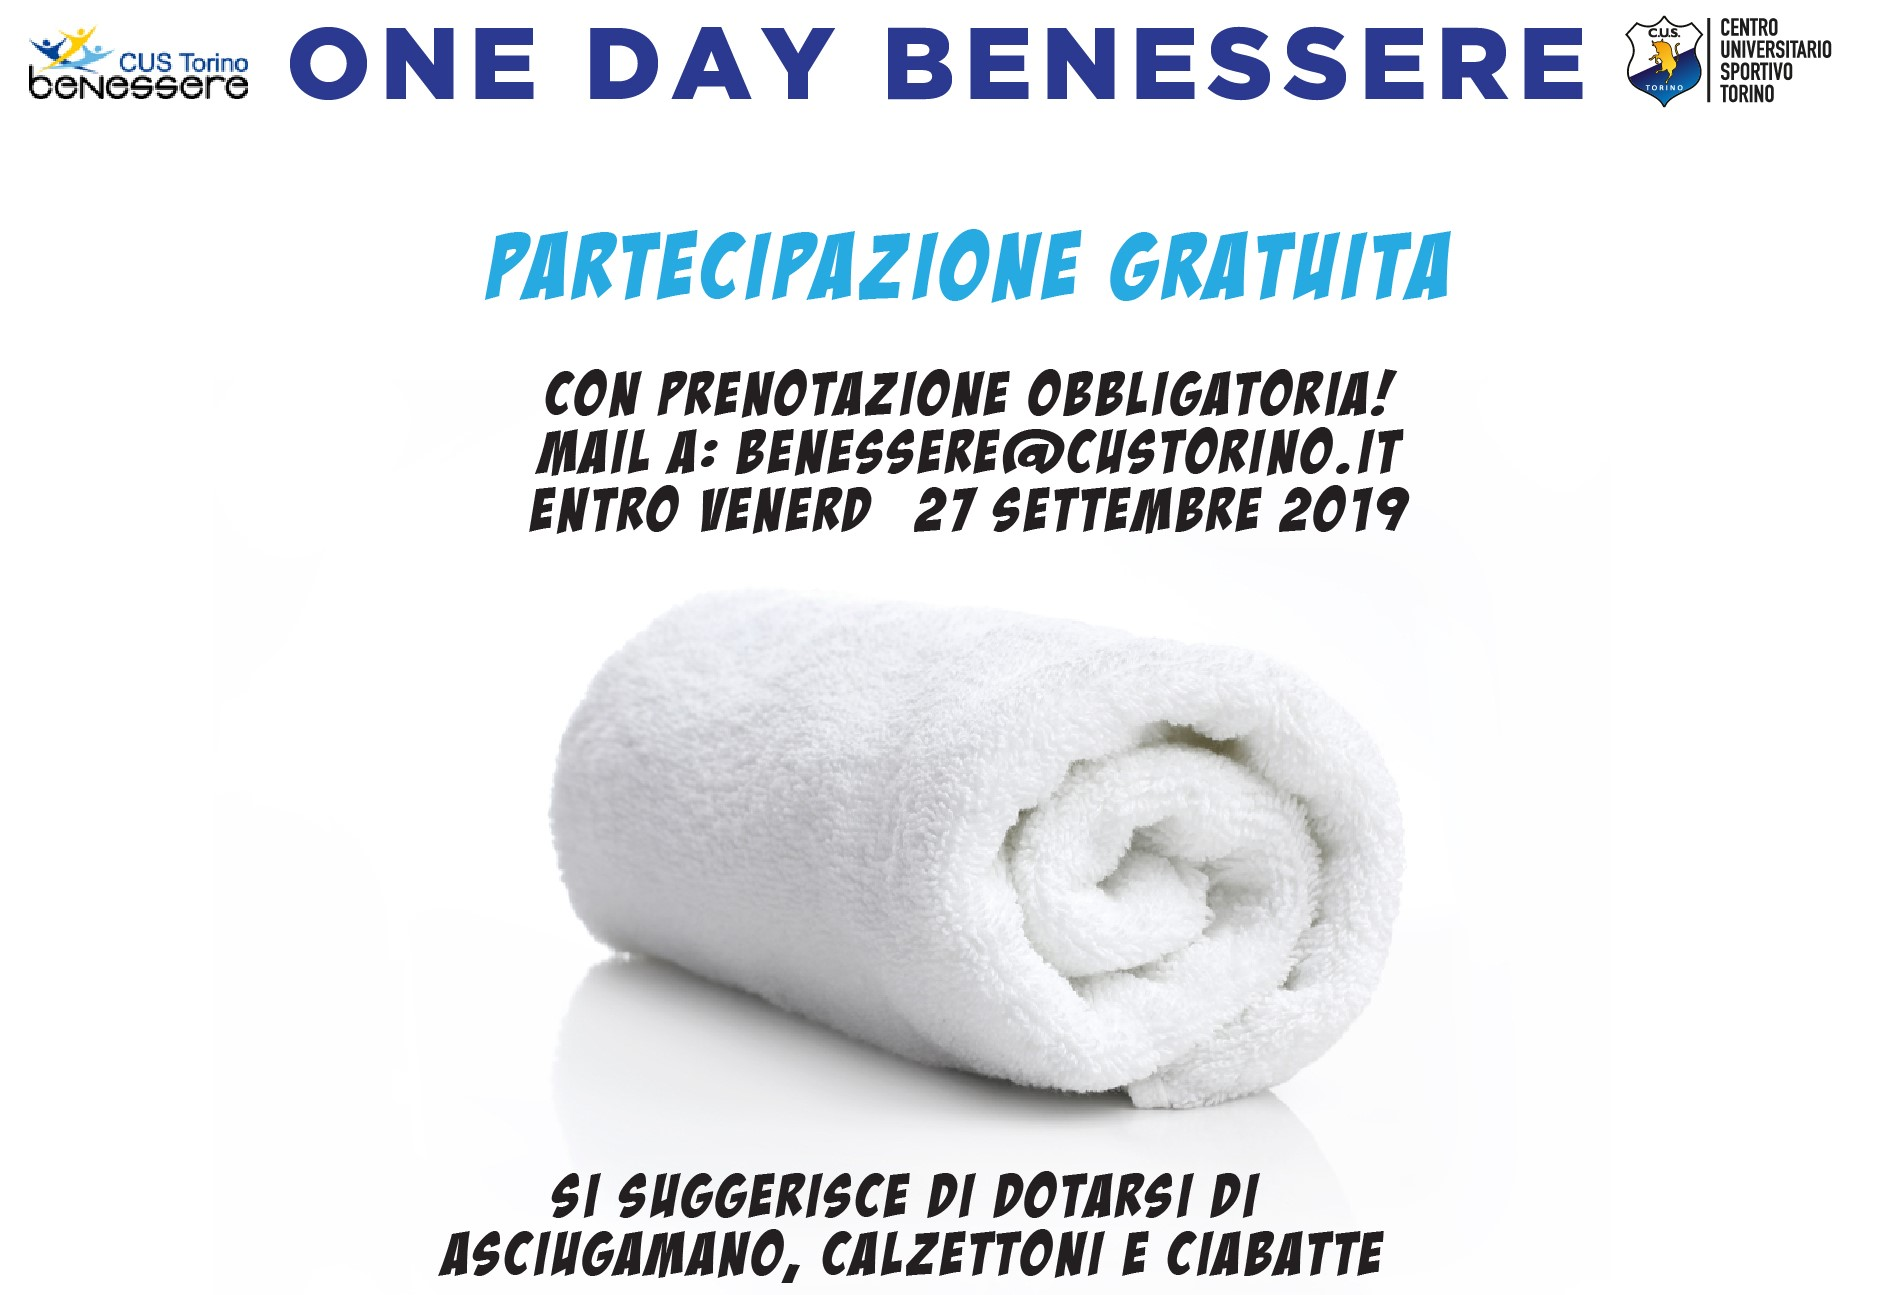 One Day Benessere